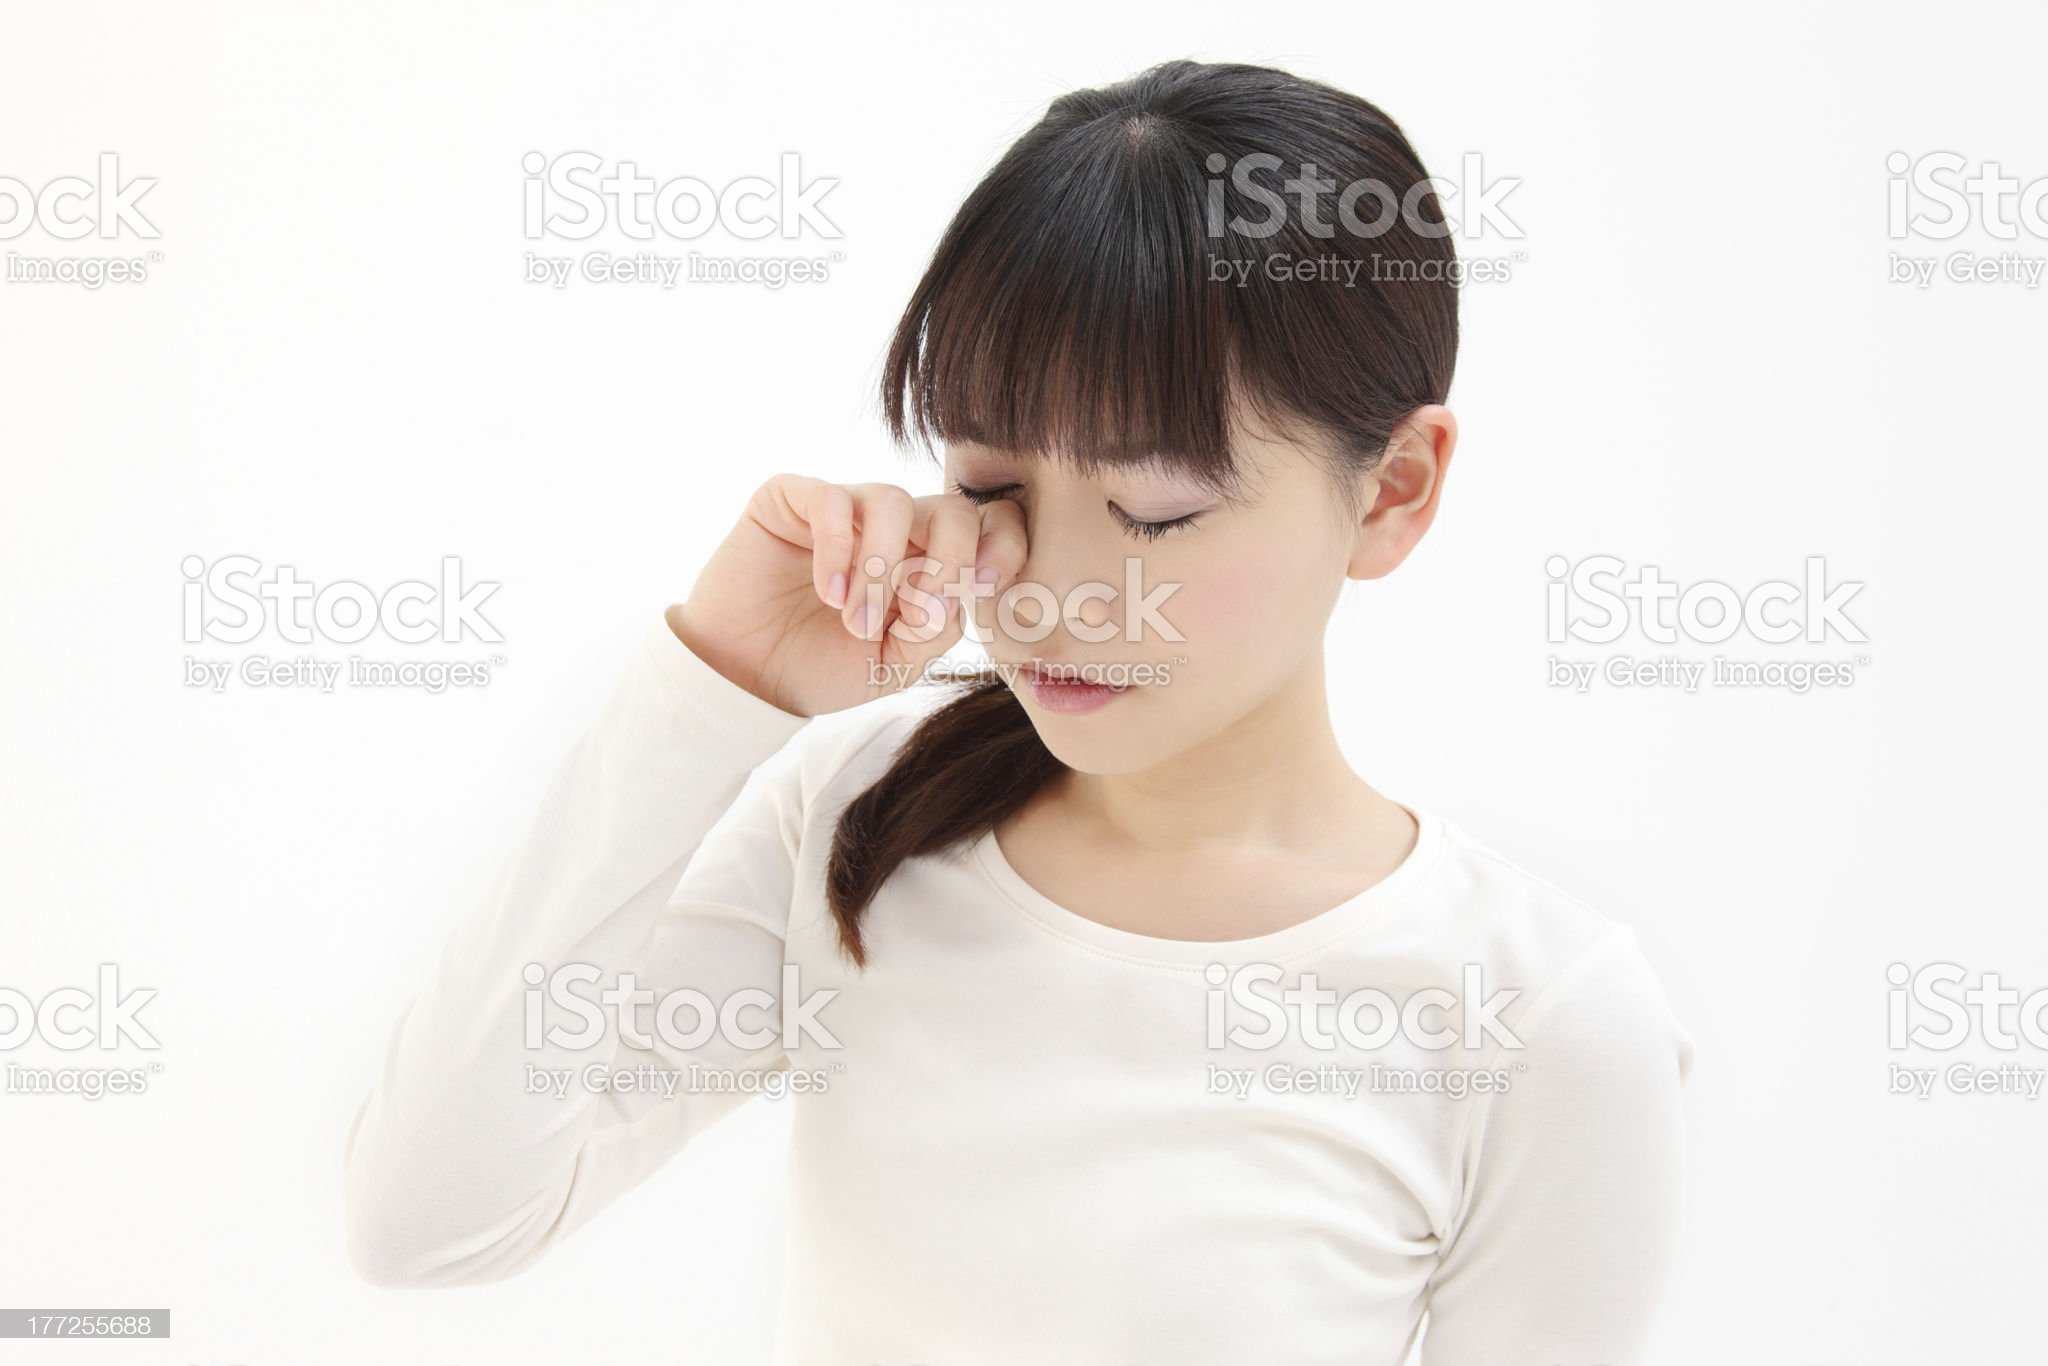 Women touch the eye royalty-free stock photo